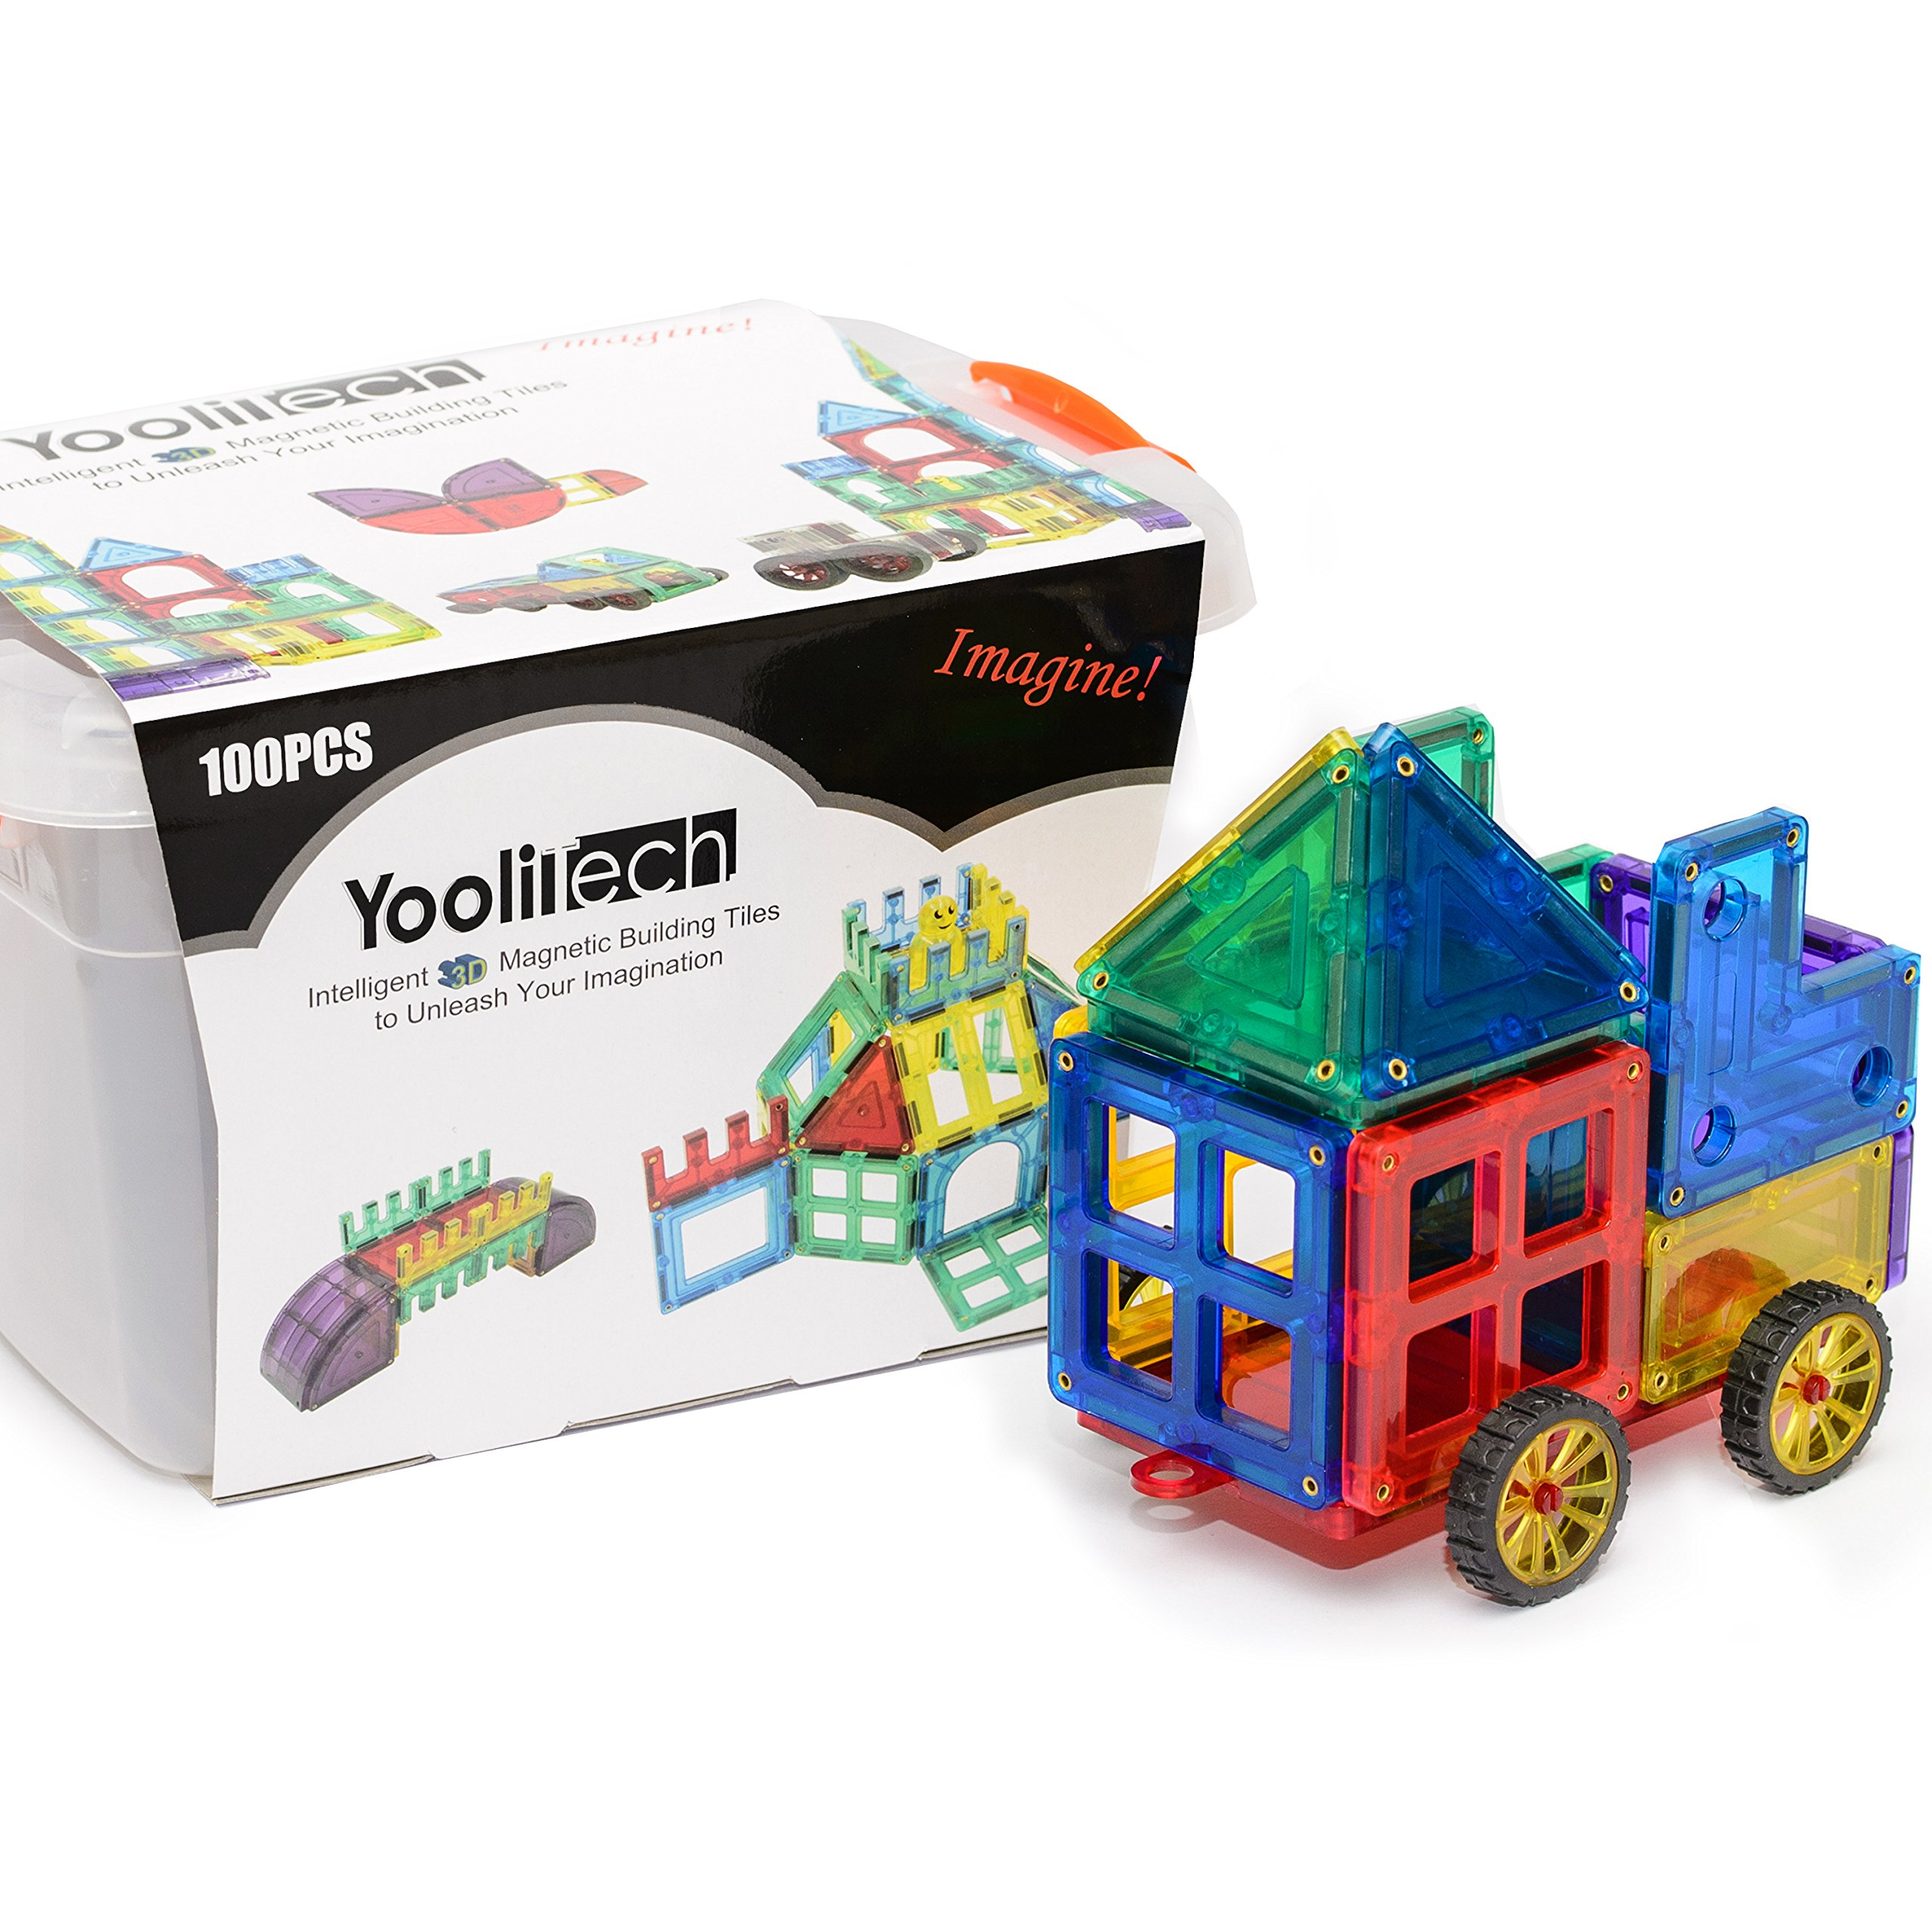 Magnetic Tiles | Magnetic Blocks for Kids | 100 Piece 3D Building Blocks with a Magnetic Car| Enhance Imagination and Creativity | Endless Possibilities |Clear Color |2 Gift Books by YooliTech (Image #1)